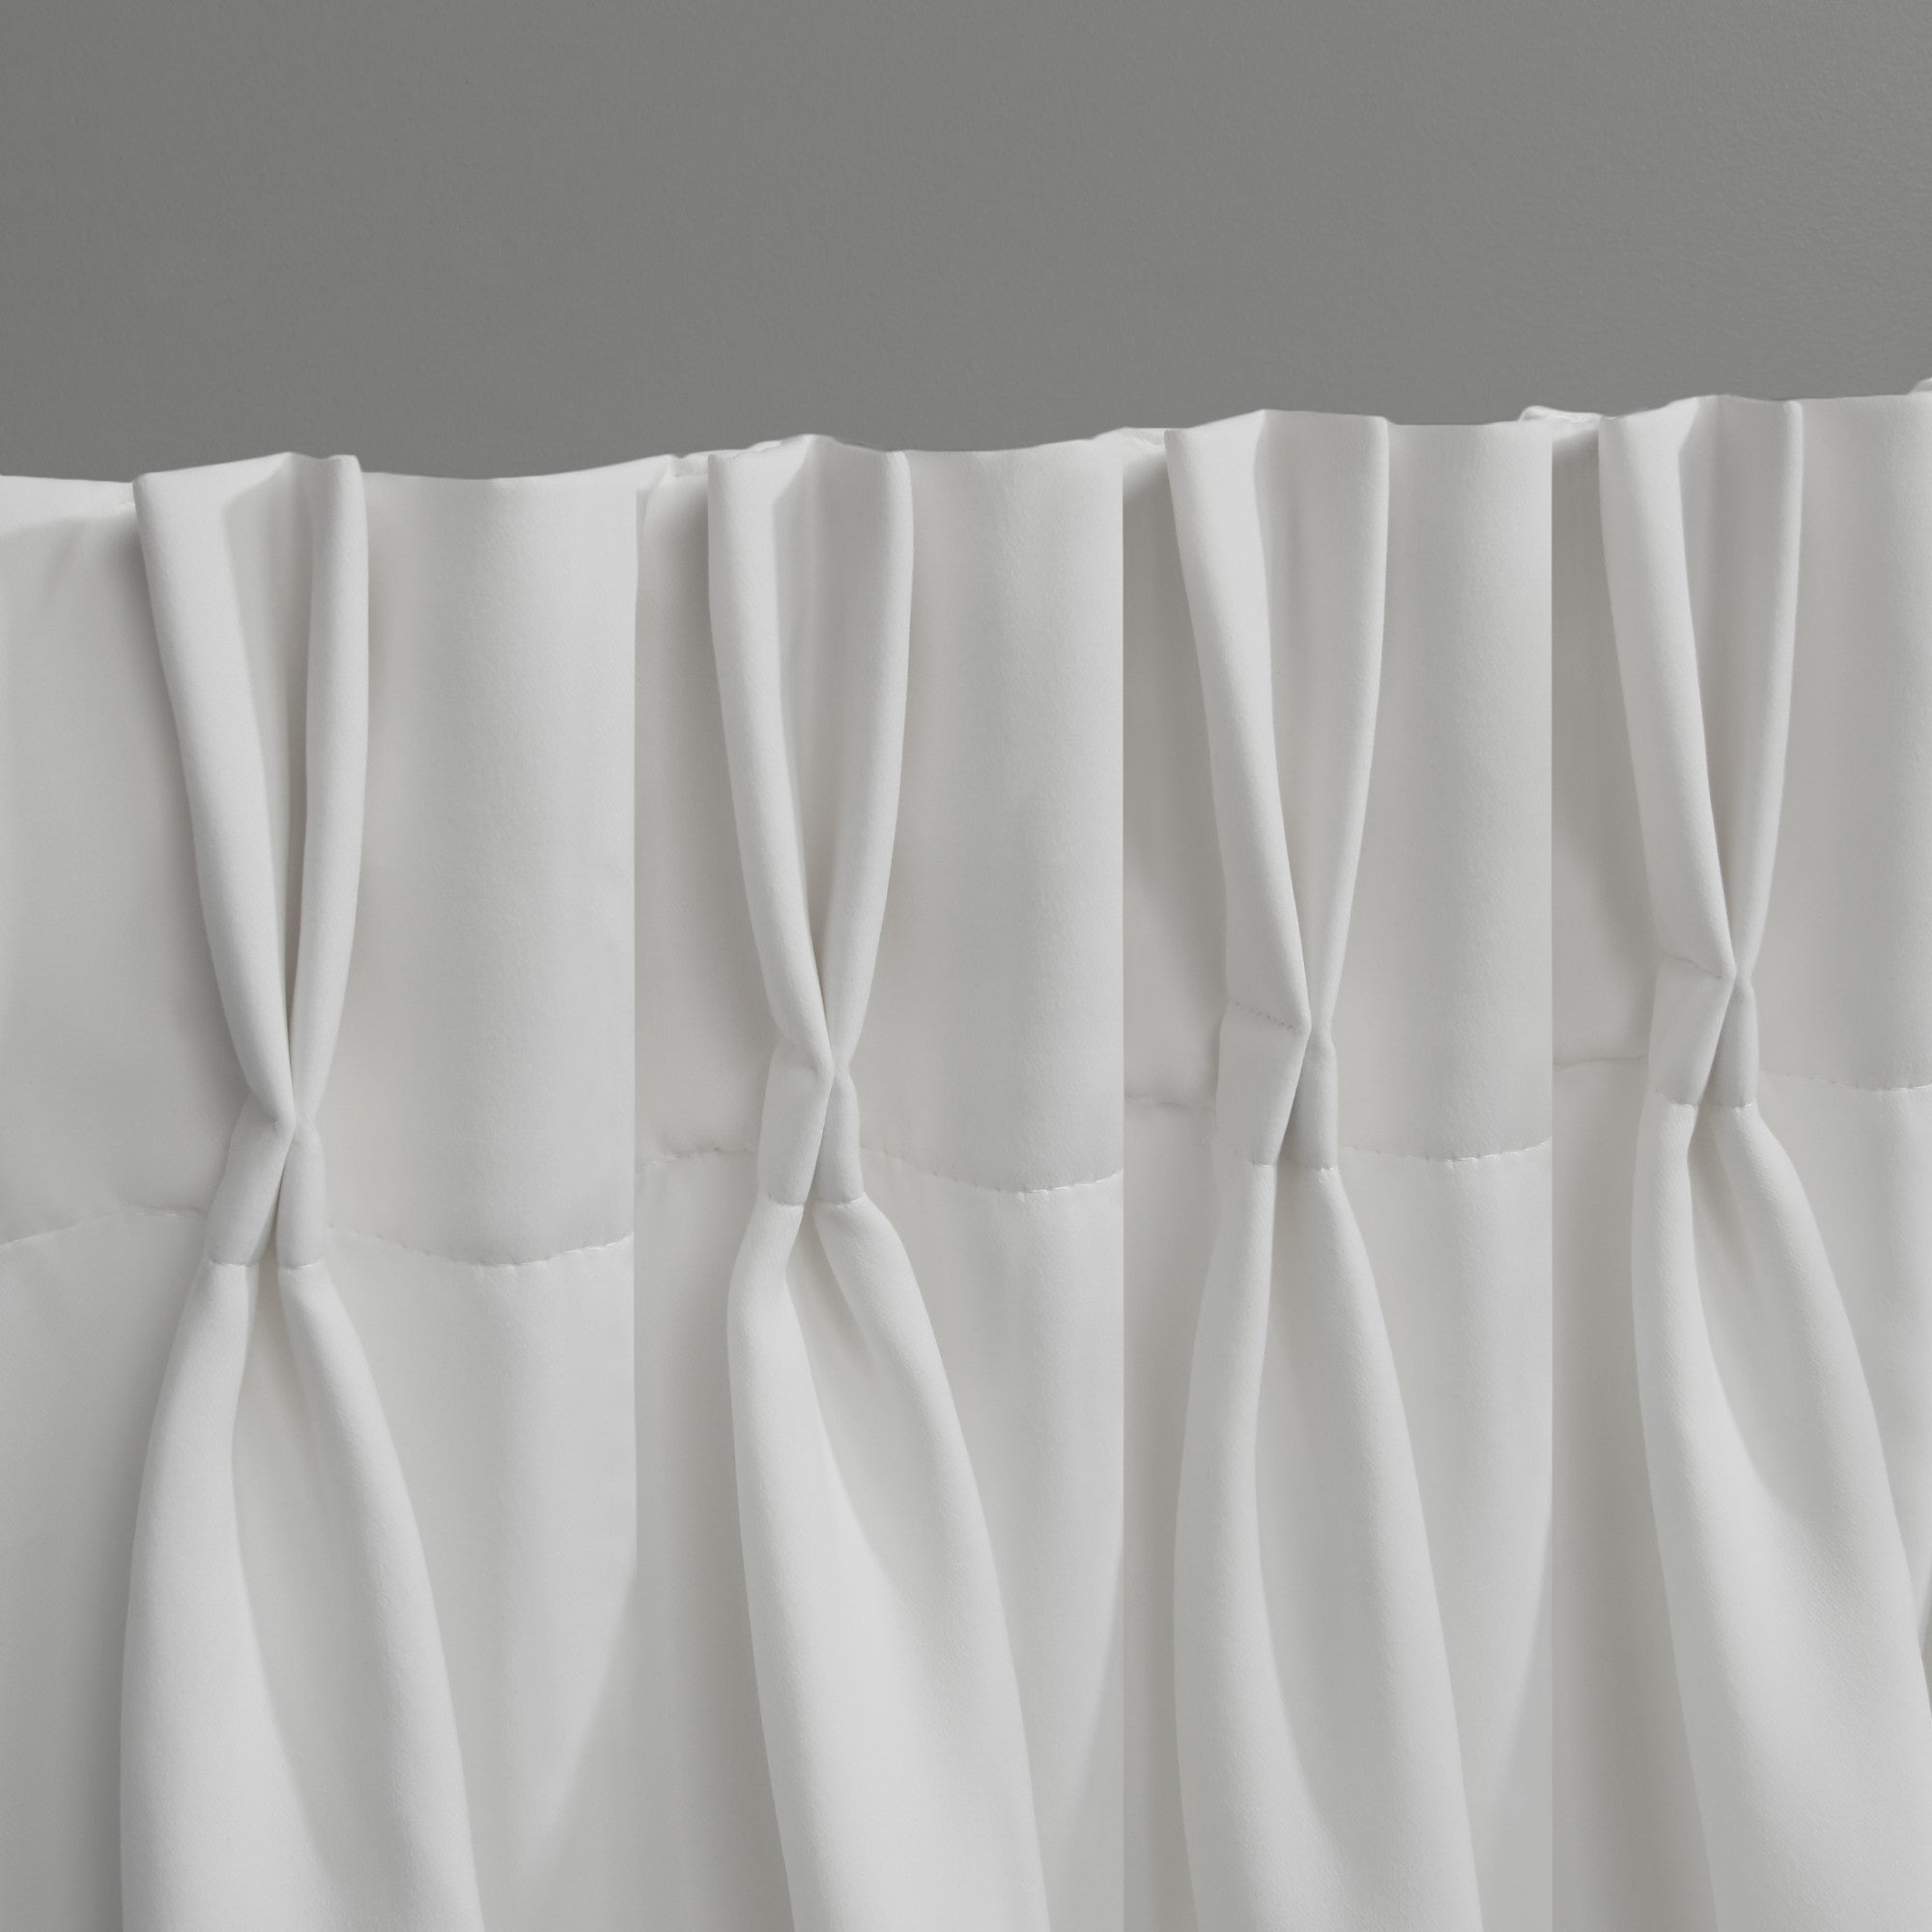 Ati Home Belgian Jacquard Sheer Double Pinch Pleat Top Curtain Panel Pair For Most Recent Double Pinch Pleat Top Curtain Panel Pairs (View 4 of 20)